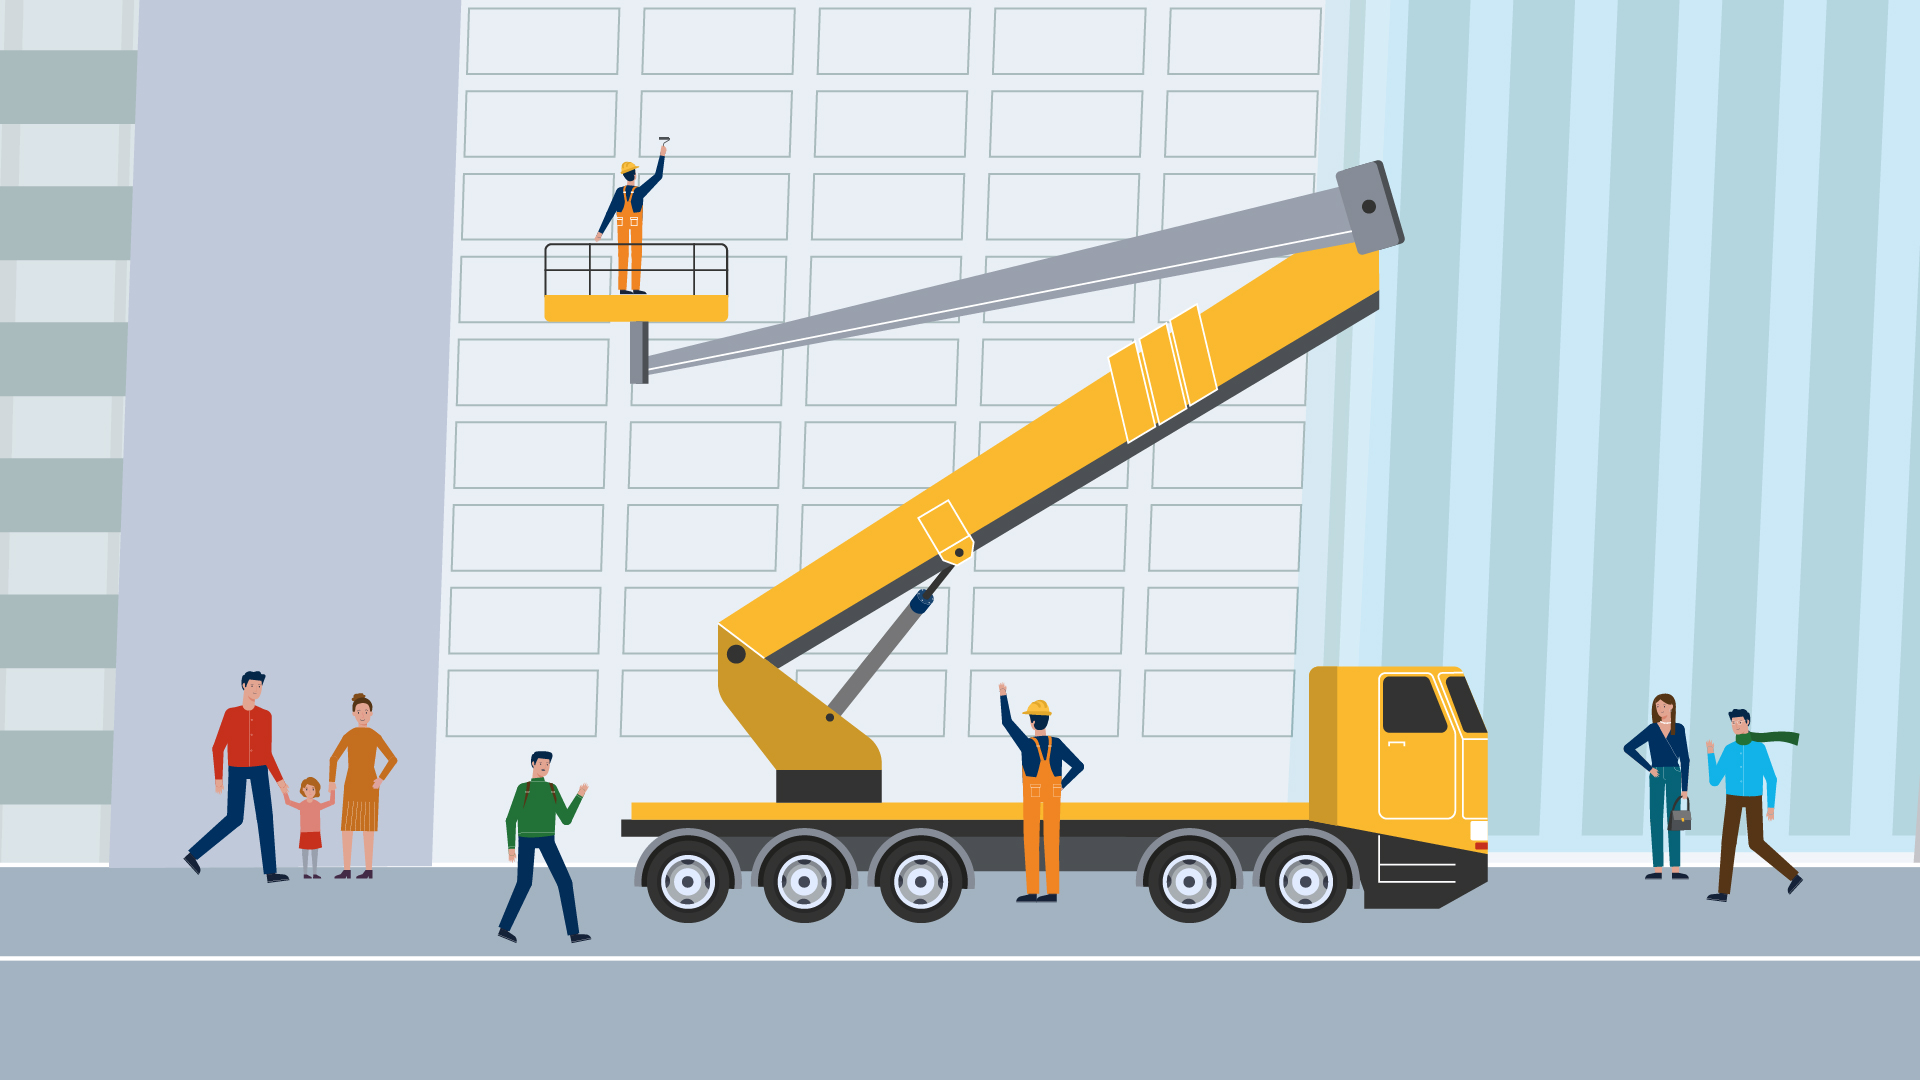 How to secure machinery on construction